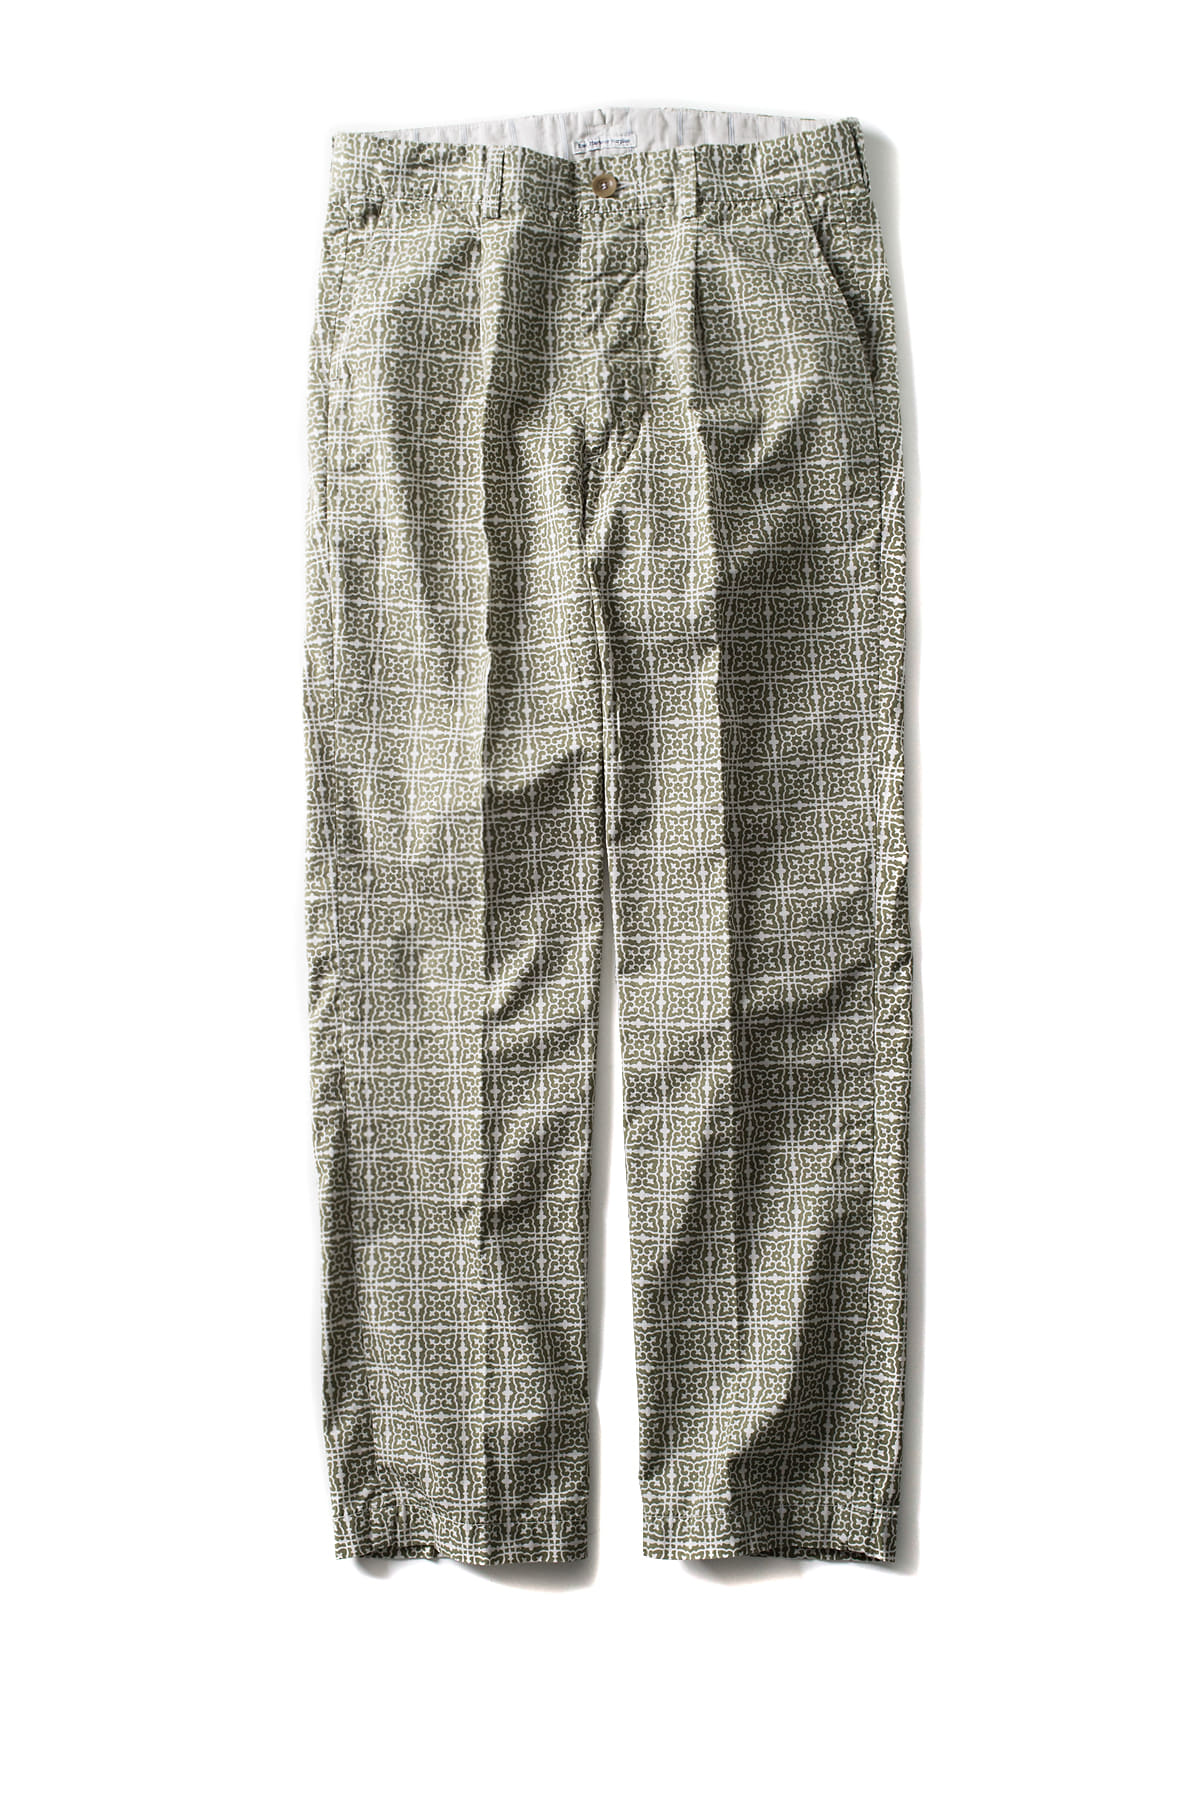 East Harbour Surplus : Allen Pants (Pattern Green)